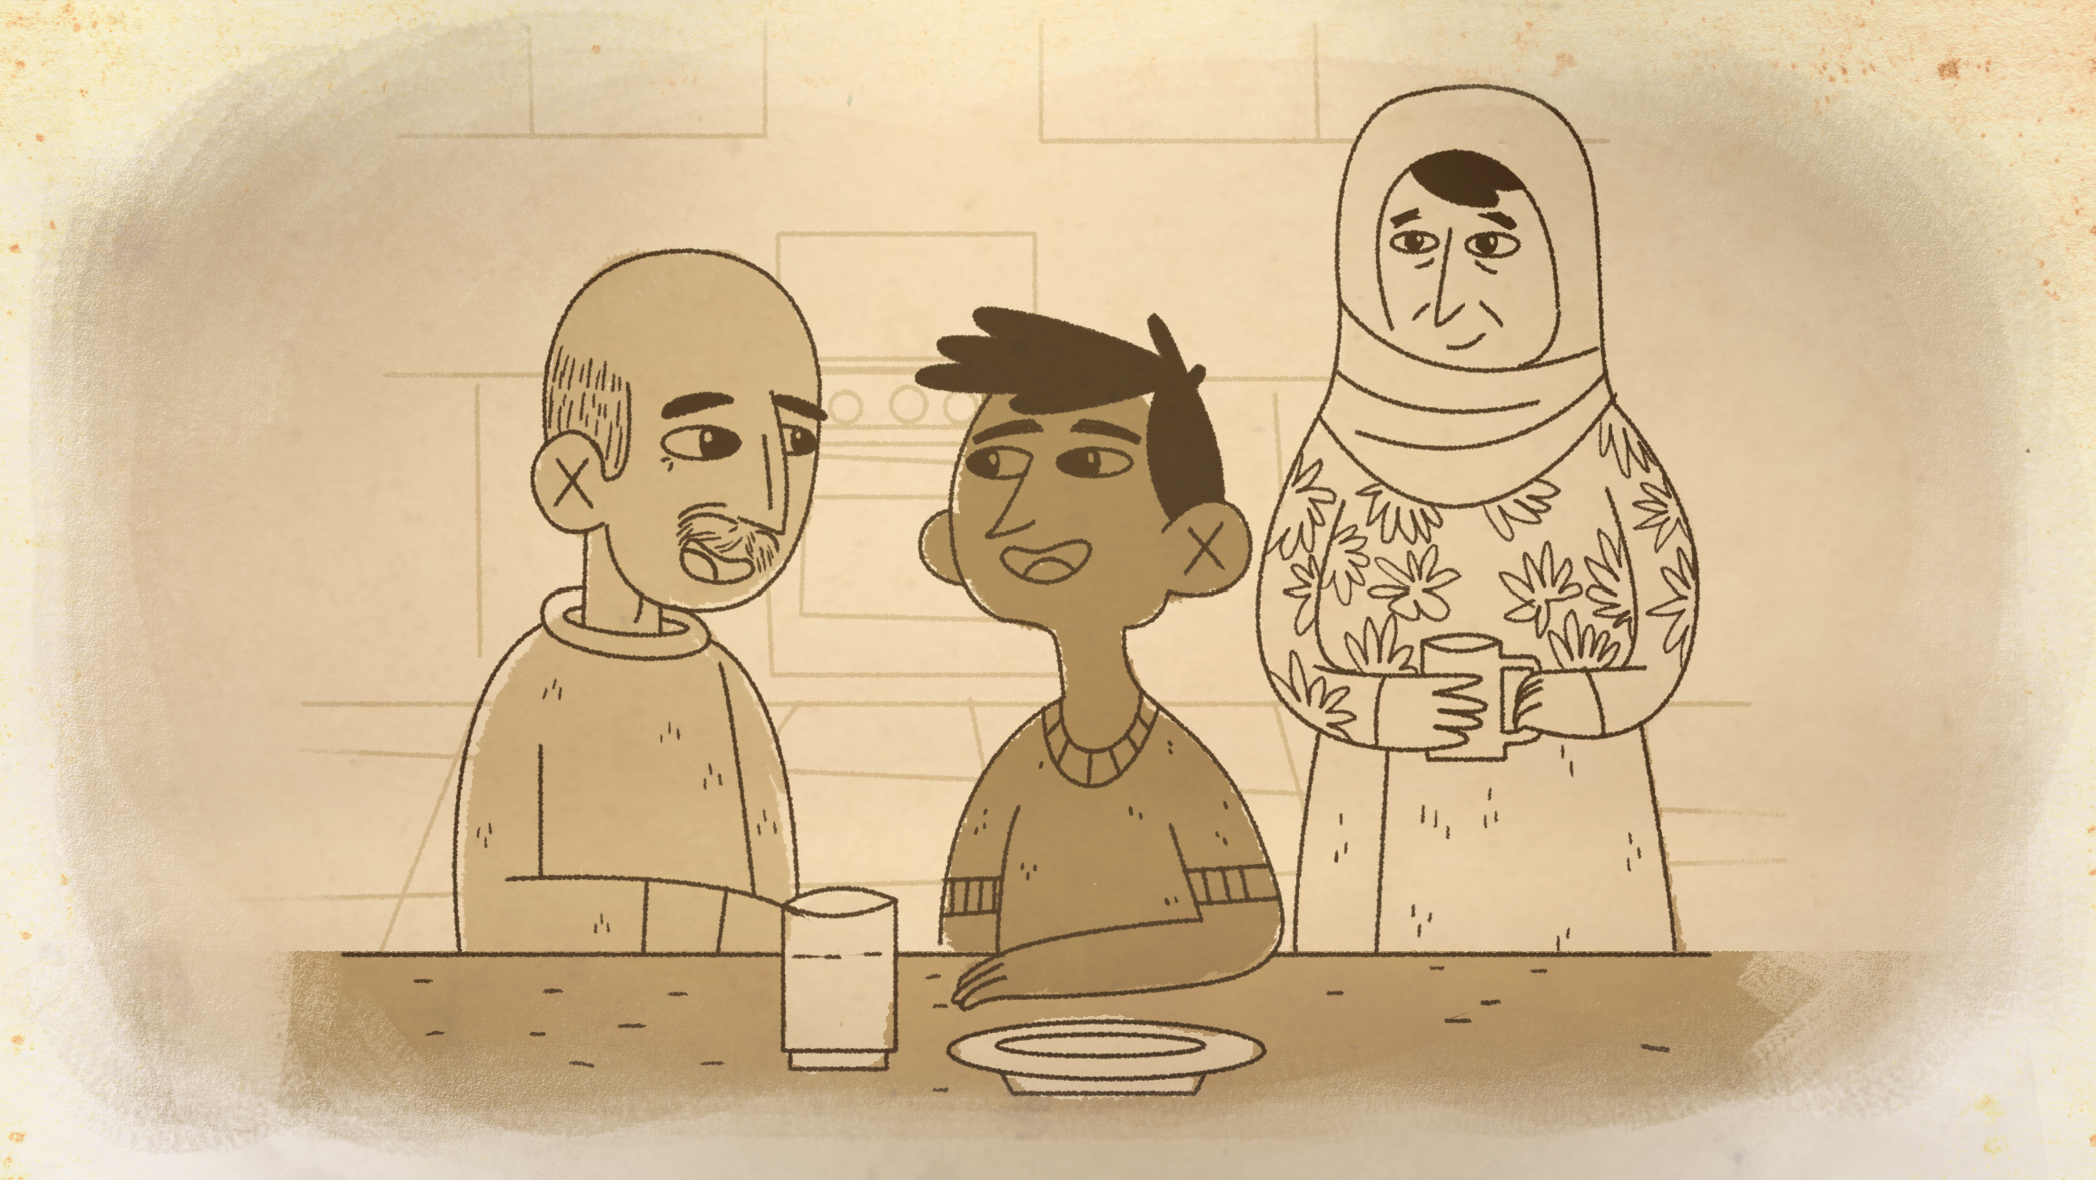 An animated scene from my  documentary film  about Ramman created by Alcides Urrutia, a Venezuelan graphic designer and animator.